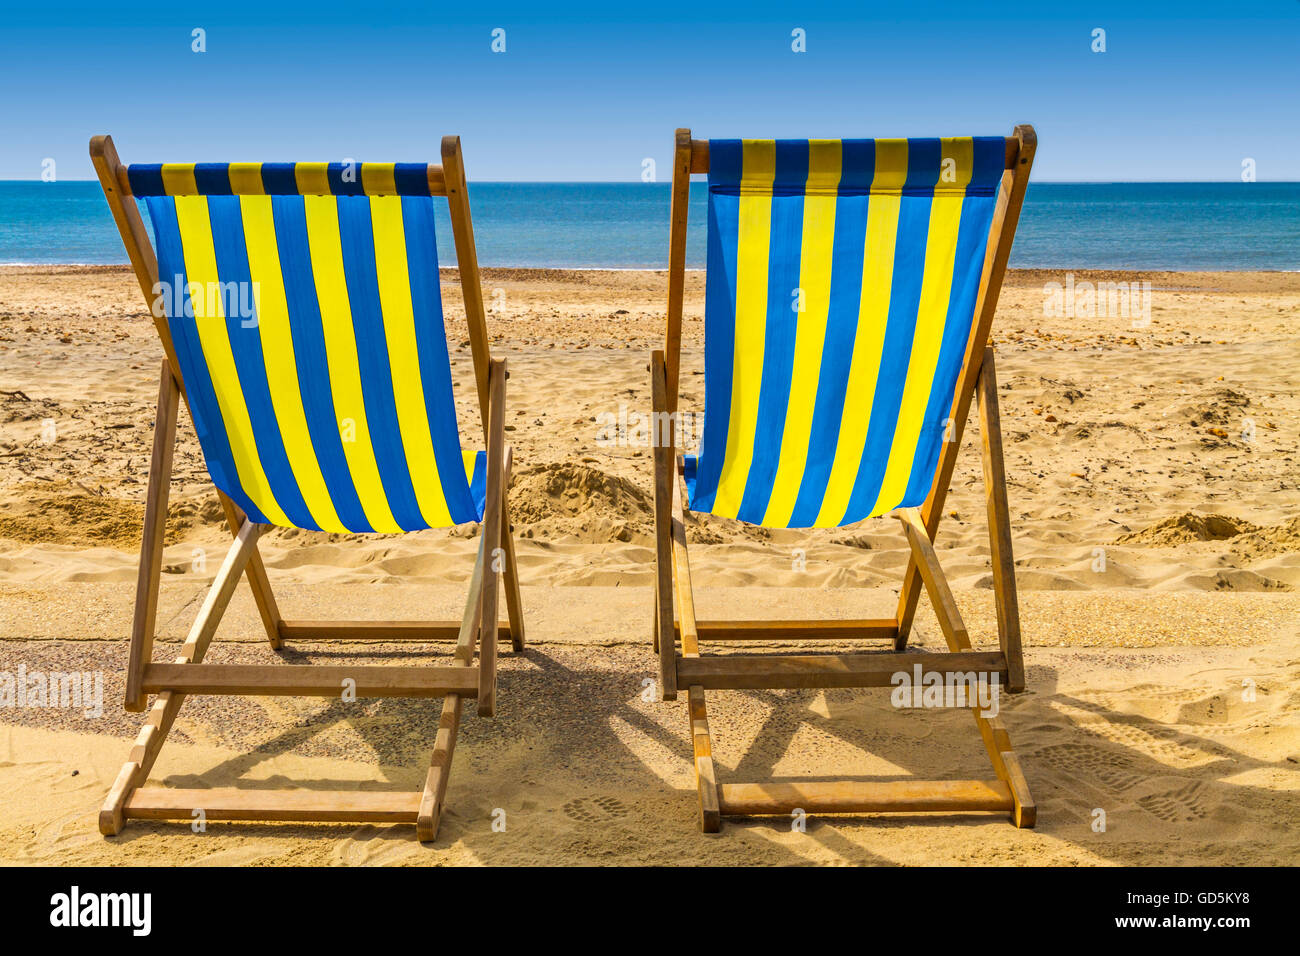 Two Blue And Yellow Deck Chairs Facing The Sea Across Golden Sand On A  Bright Sunny Day, Bournemouth, UK